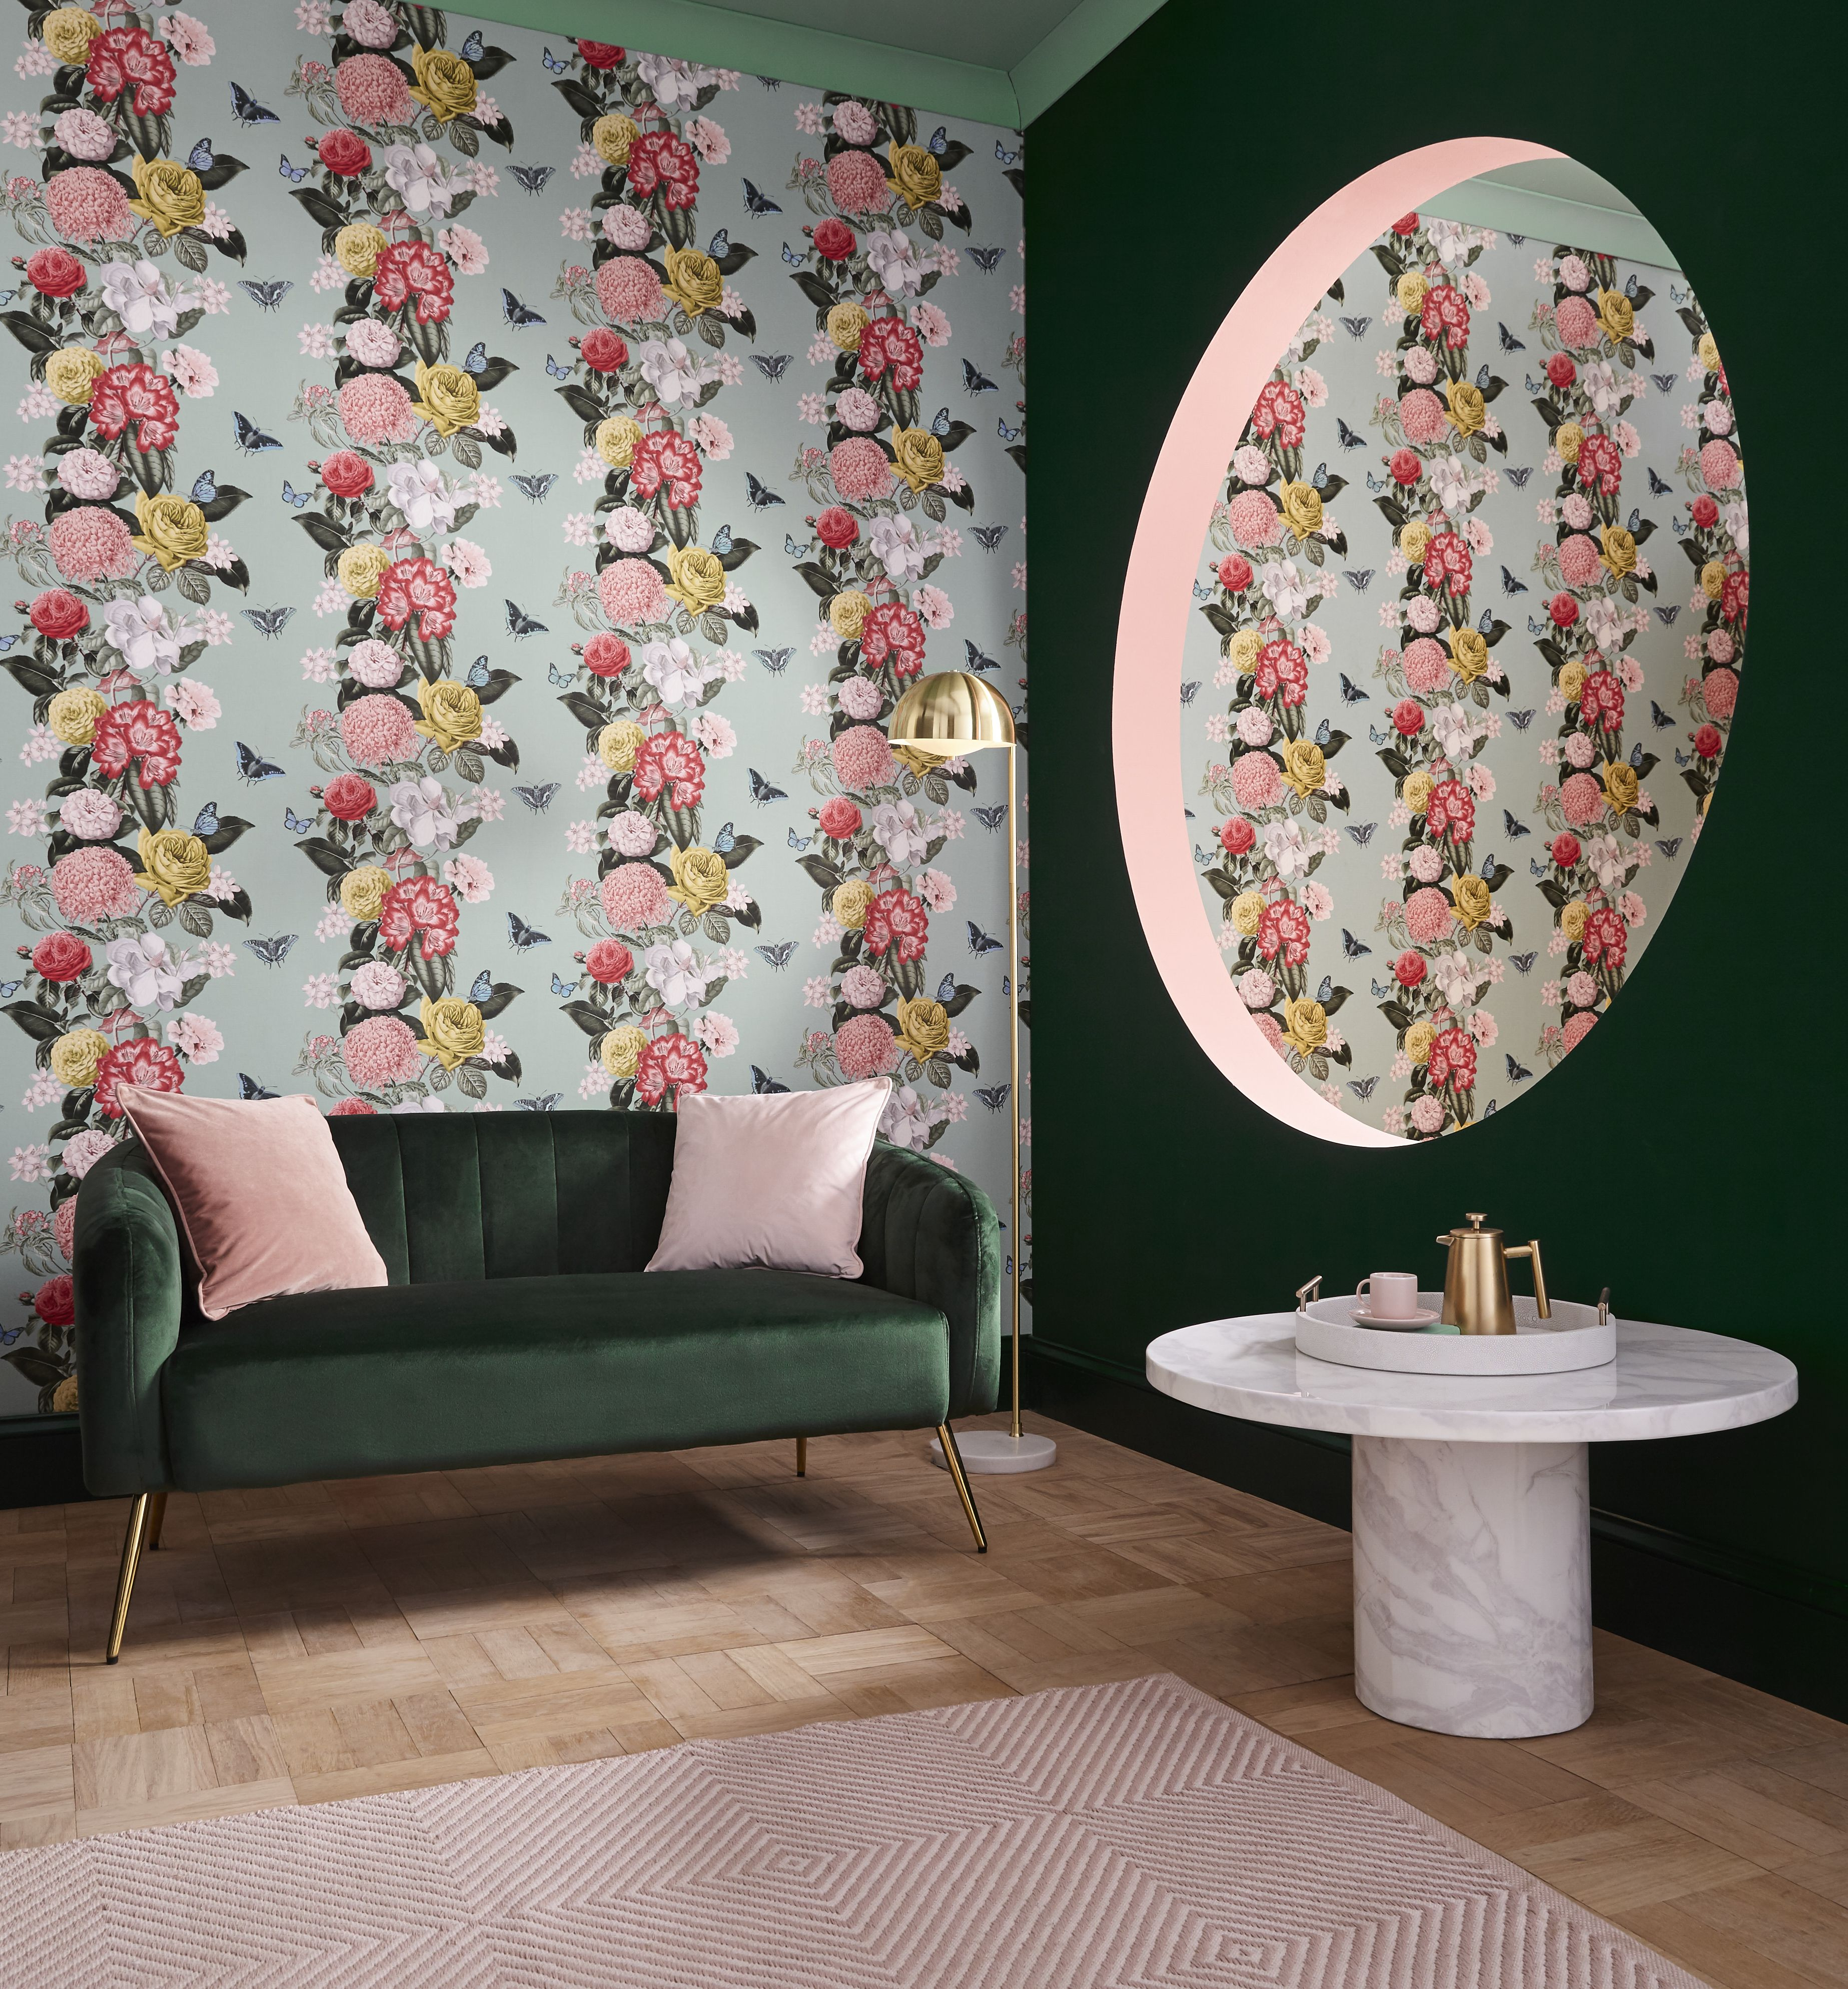 Wallpaper of the year, Bloomsbury Neo Mint paired with